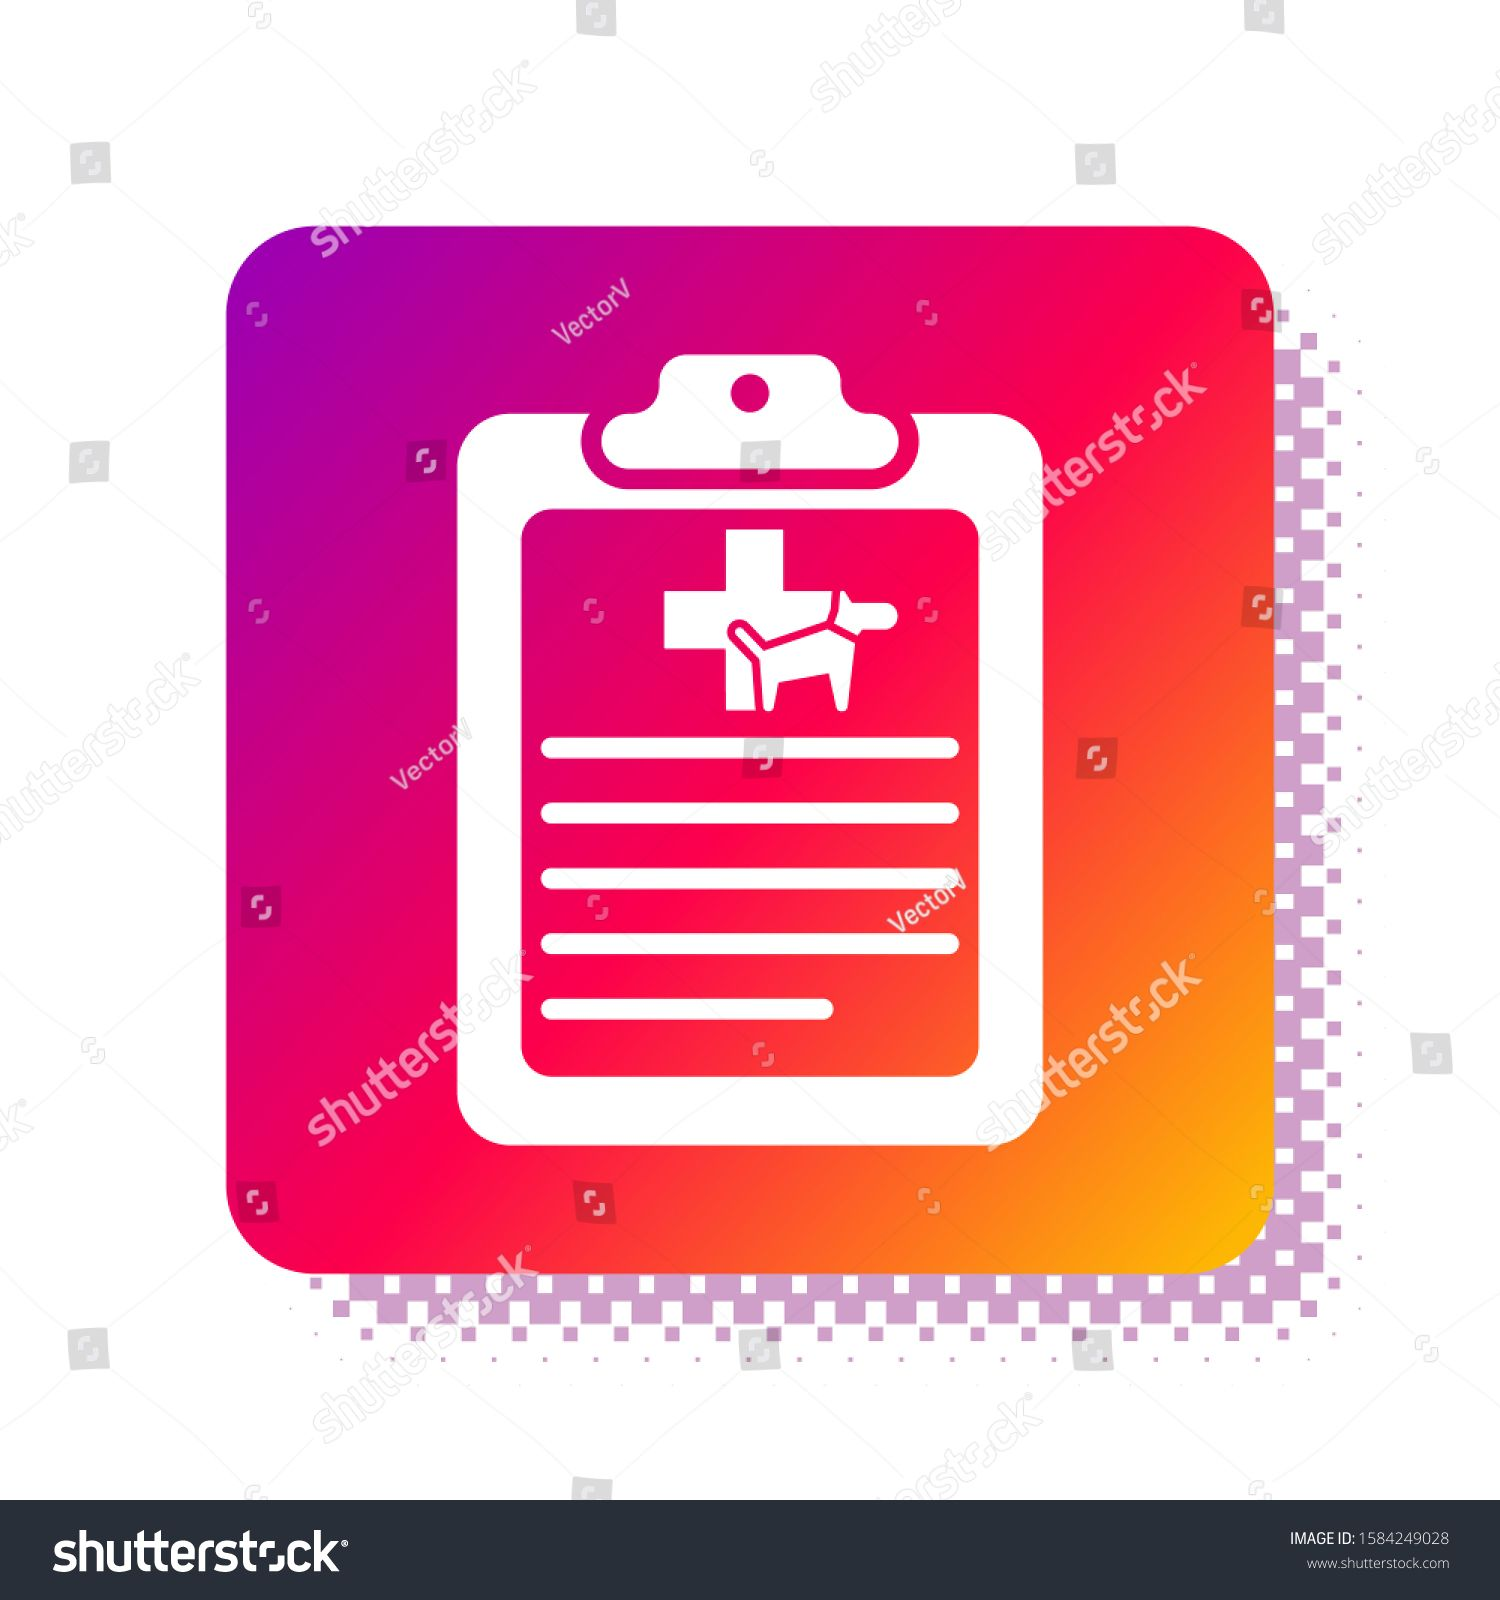 White Clipboard With Medical Clinical Record Pet Icon Isolated On White Background Health Insurance Form Medical Check Marks Report In 2020 Mockup Design Bage Icon